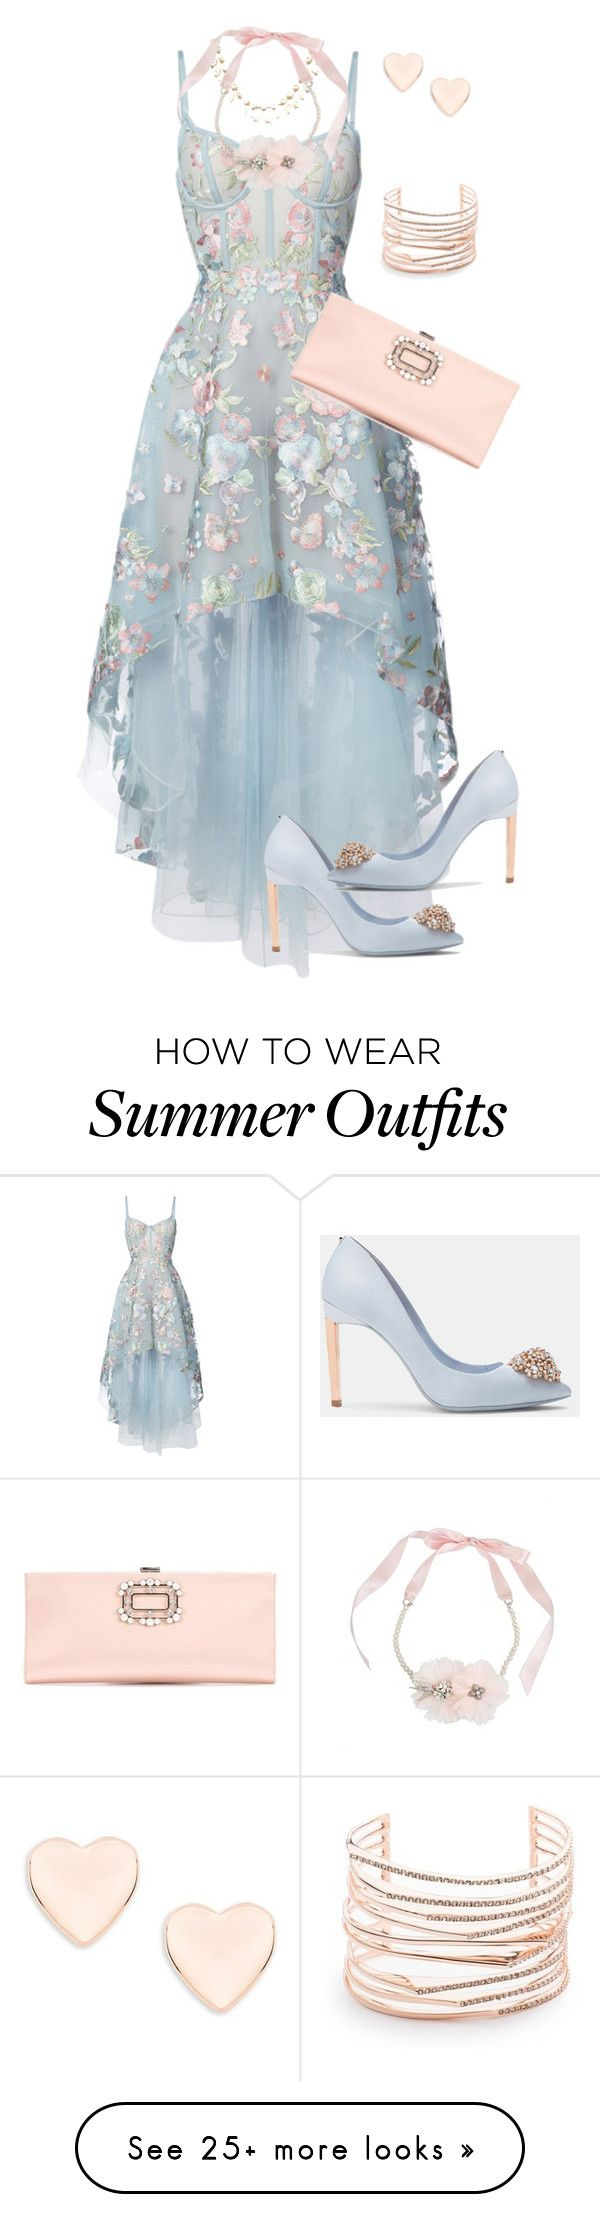 """Formal Wedding Attire"" by sherrysrosecottage-1 on Polyvore featuring Notte by Marchesa, Ted Baker, Betsey Johnson and Alexis Bittar"